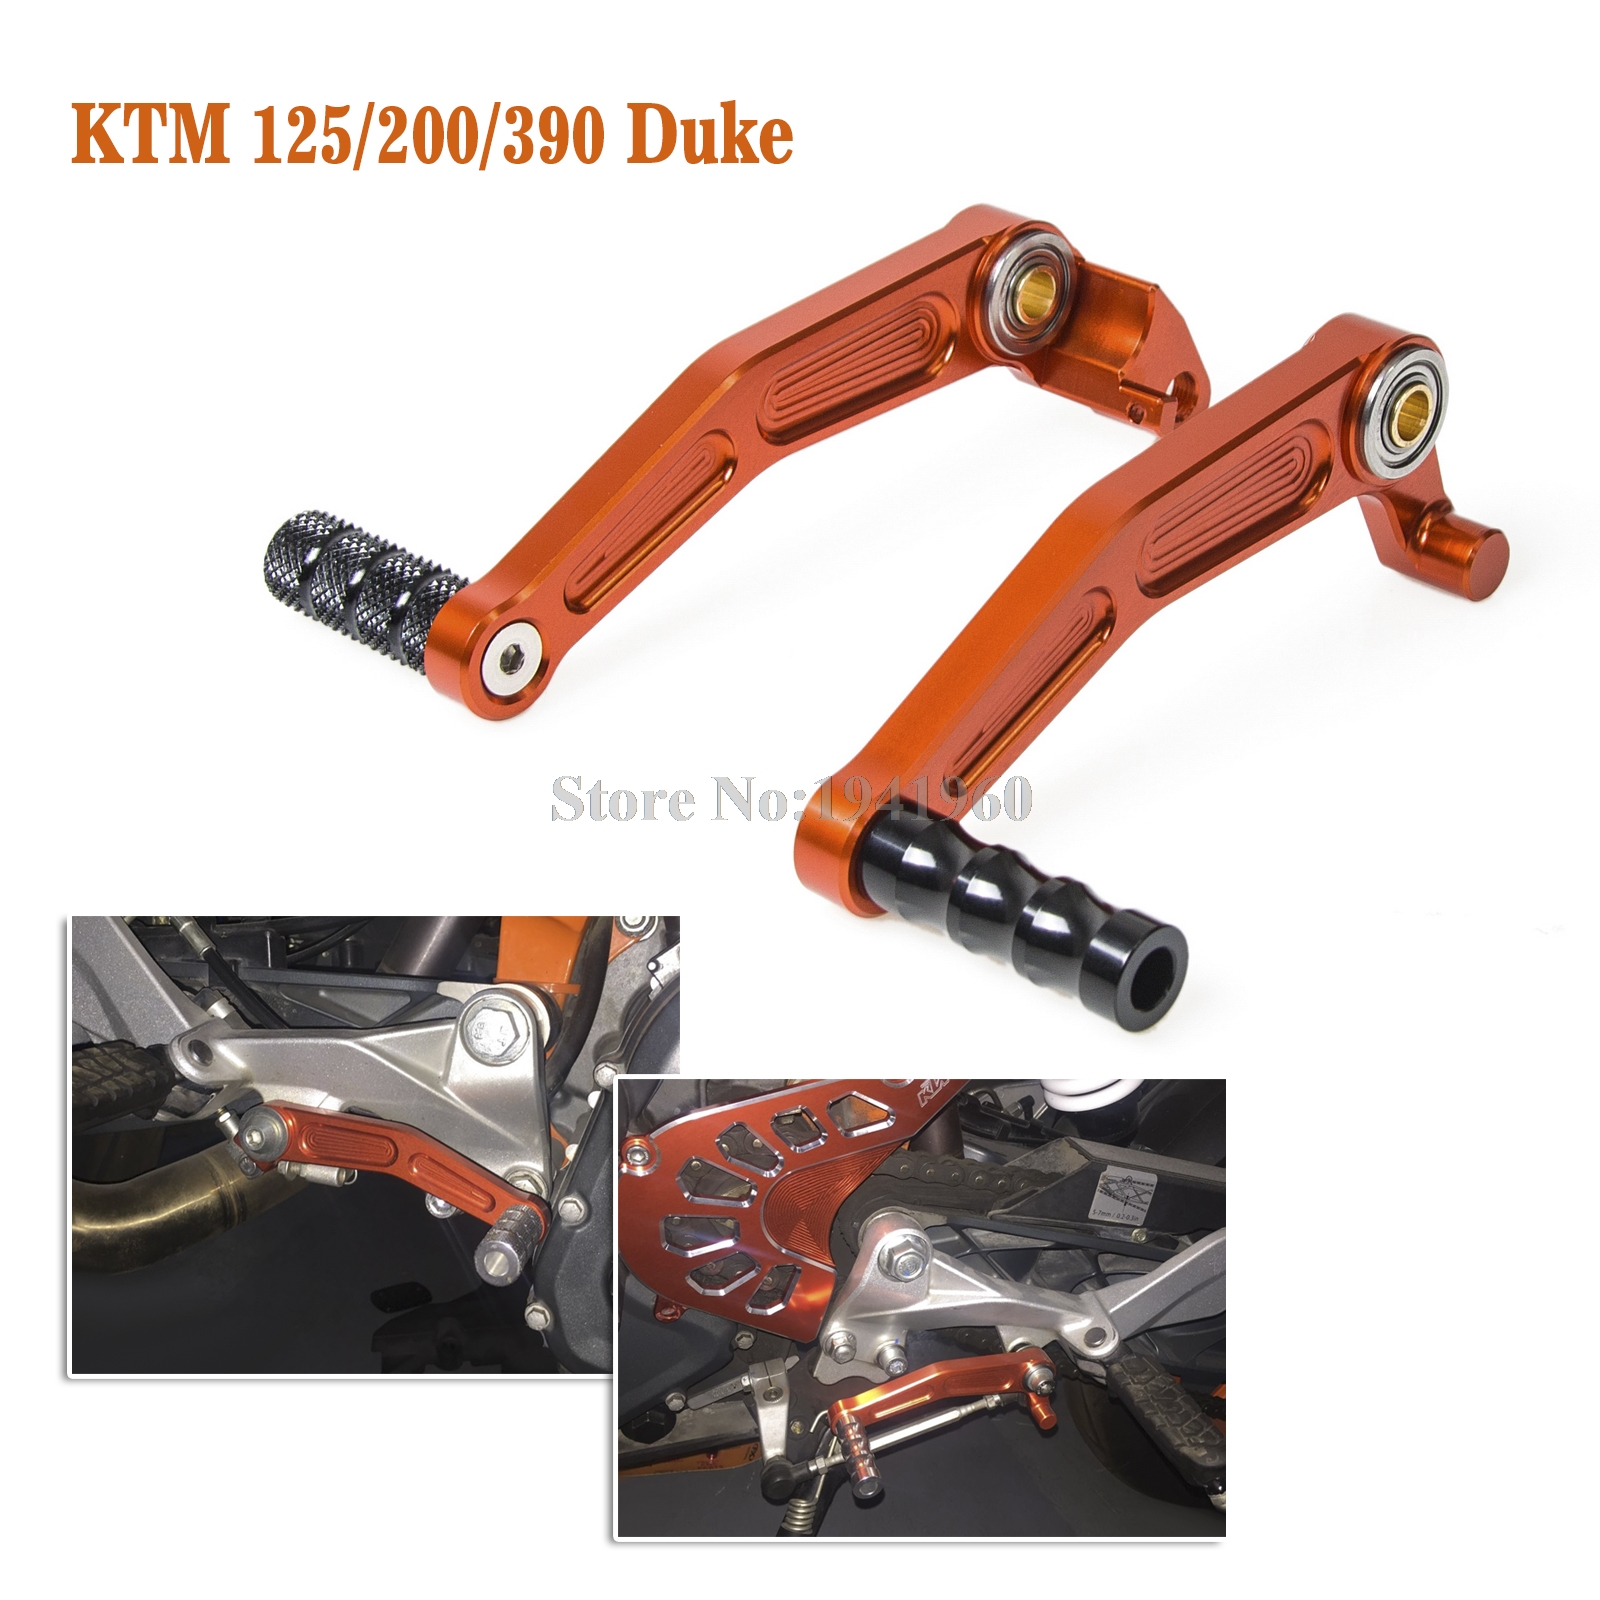 Alumium Motorcycle Gear Shift Pedal Lever Foot Brake Lever For KTM RC 125 200 390 Duke 2011-2013 2014 2015 2016 for ktm duke rc 125 200 390 motorcycle cnc foot brake pedal lever gear shift levers orange